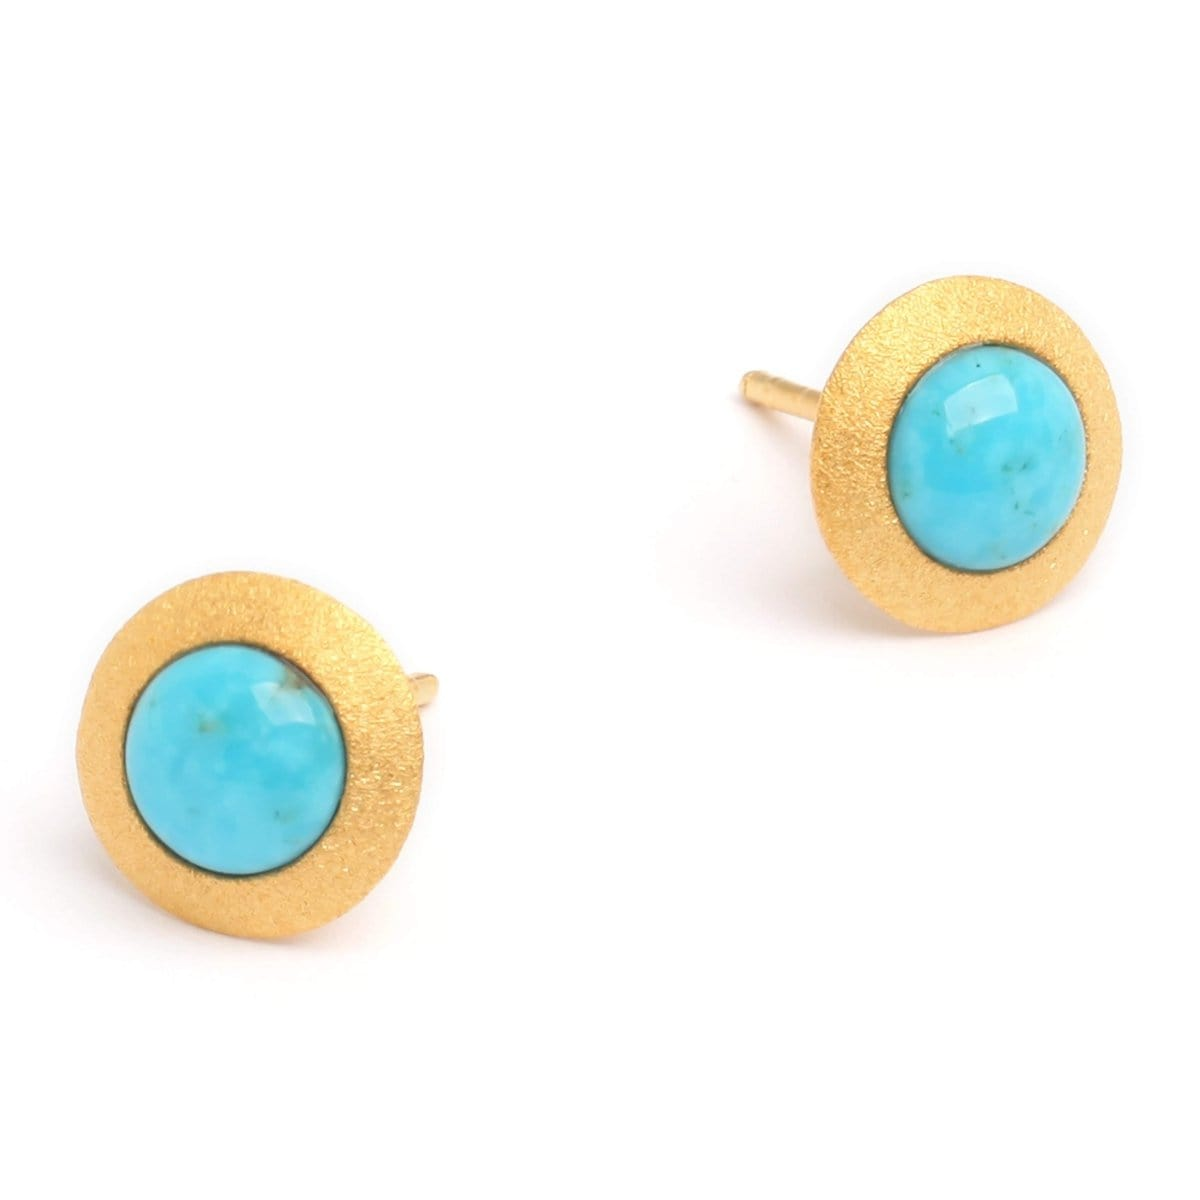 Disca Turquoise Pin Earrings - 19227256-Bernd Wolf-Renee Taylor Gallery